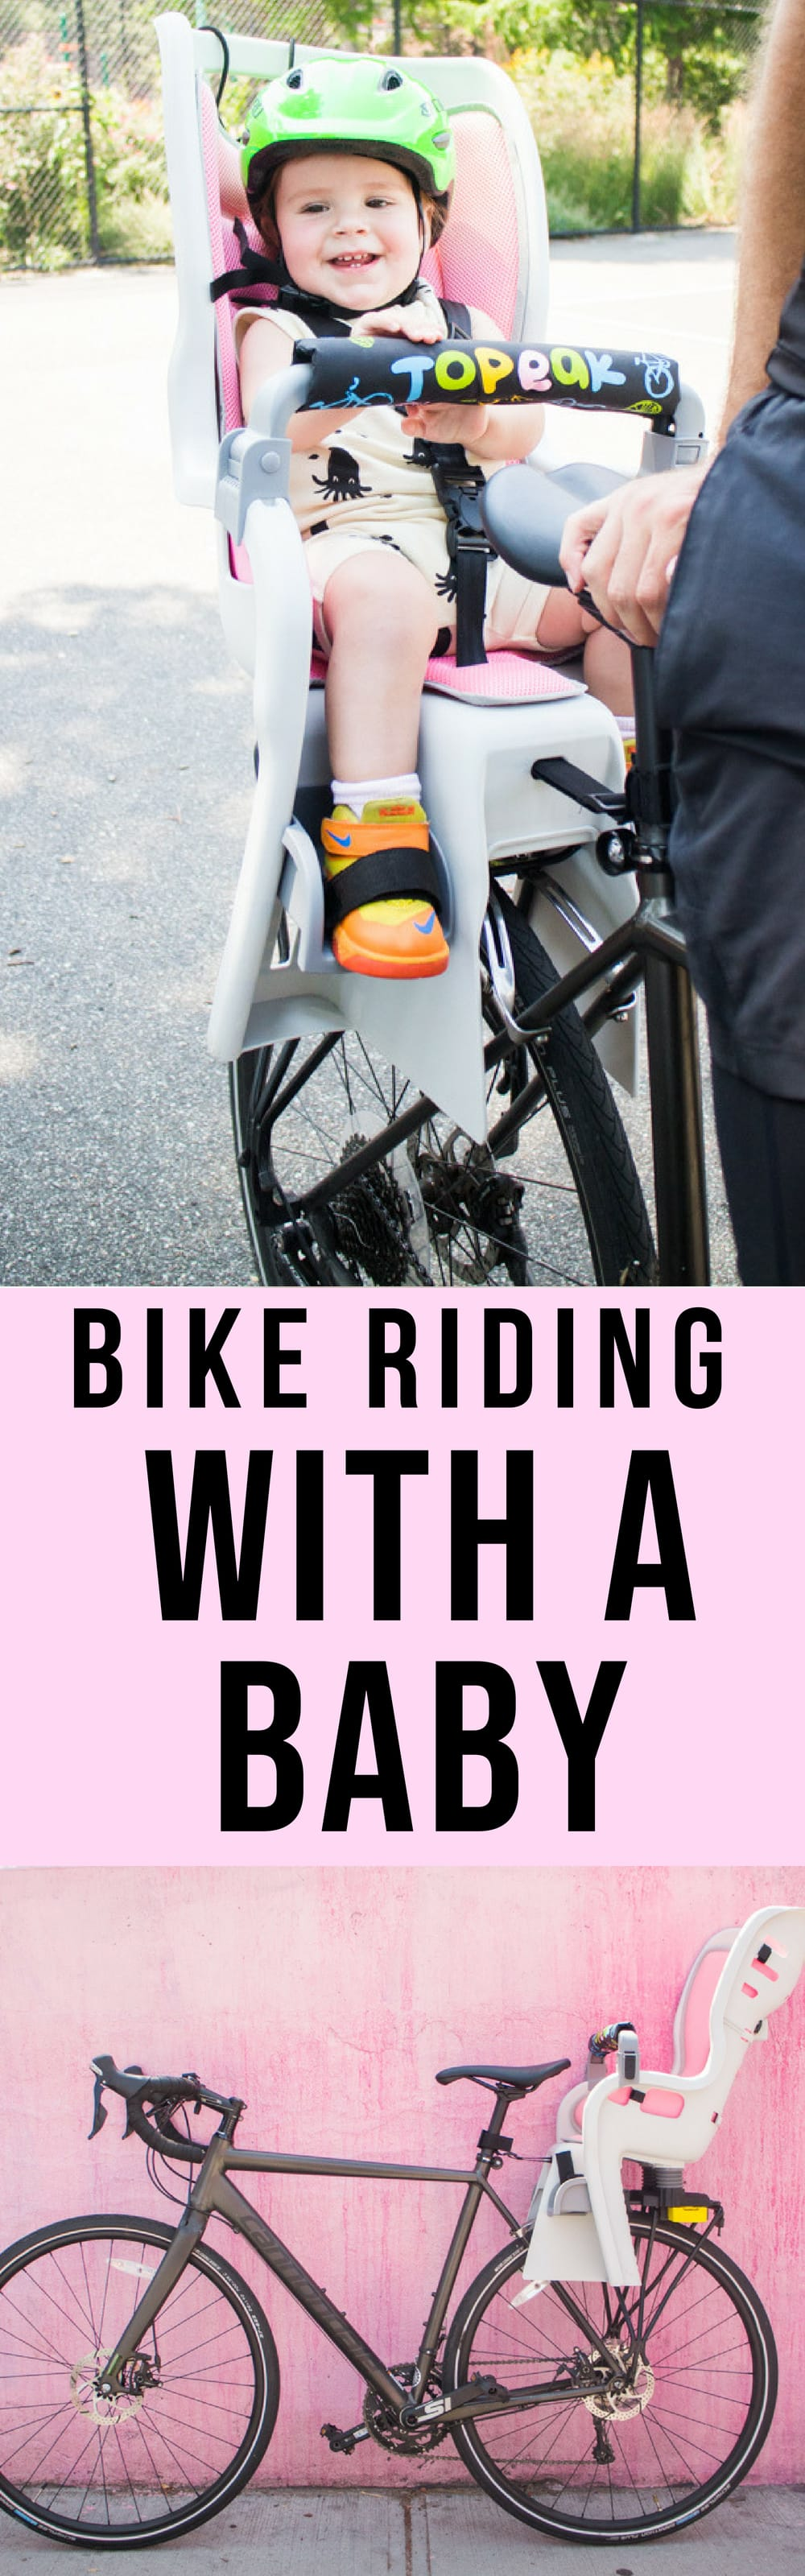 Full guide on bike riding with a baby! We started riding in NYC with our baby at 10 months old. Learn about the best baby bike seat, baby helmet and safety tips!